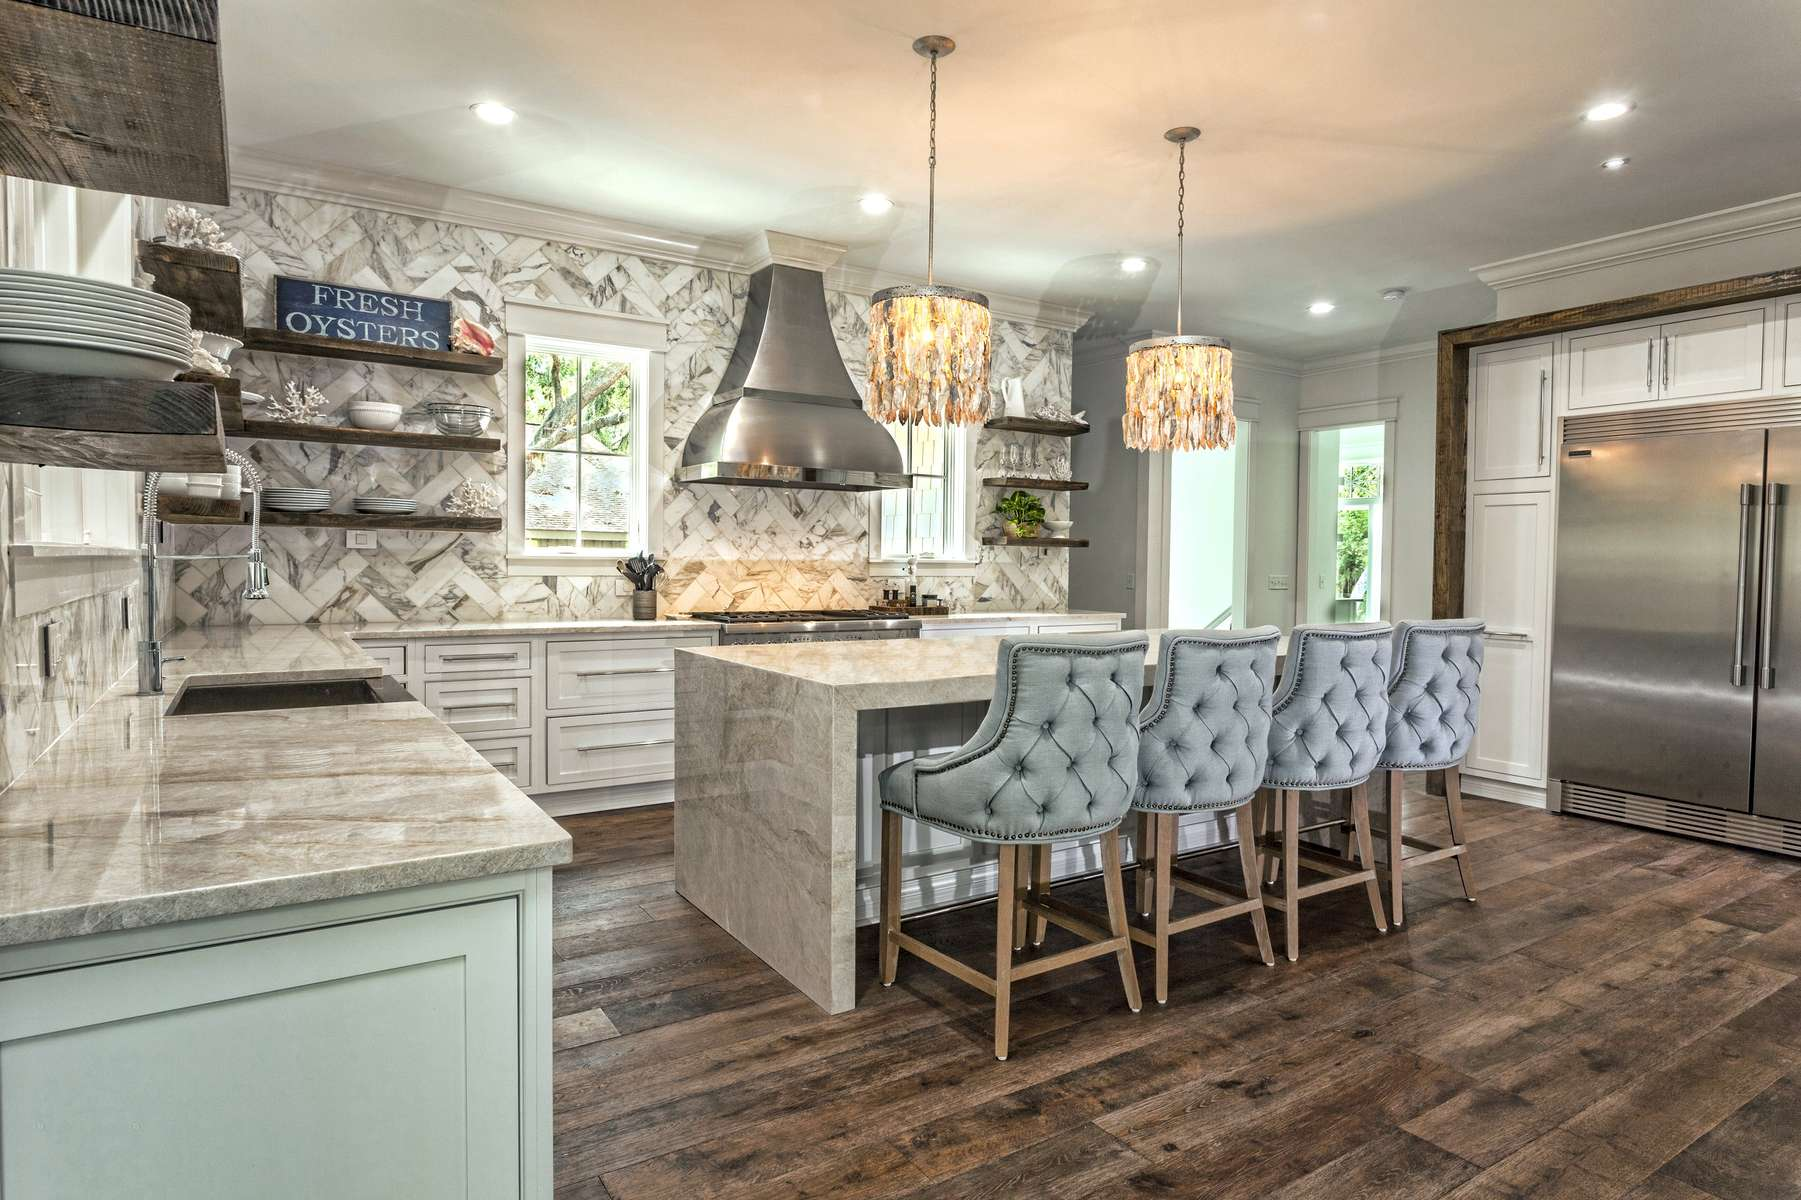 Best New Home Kitchen by Terri Puma Designs LLC